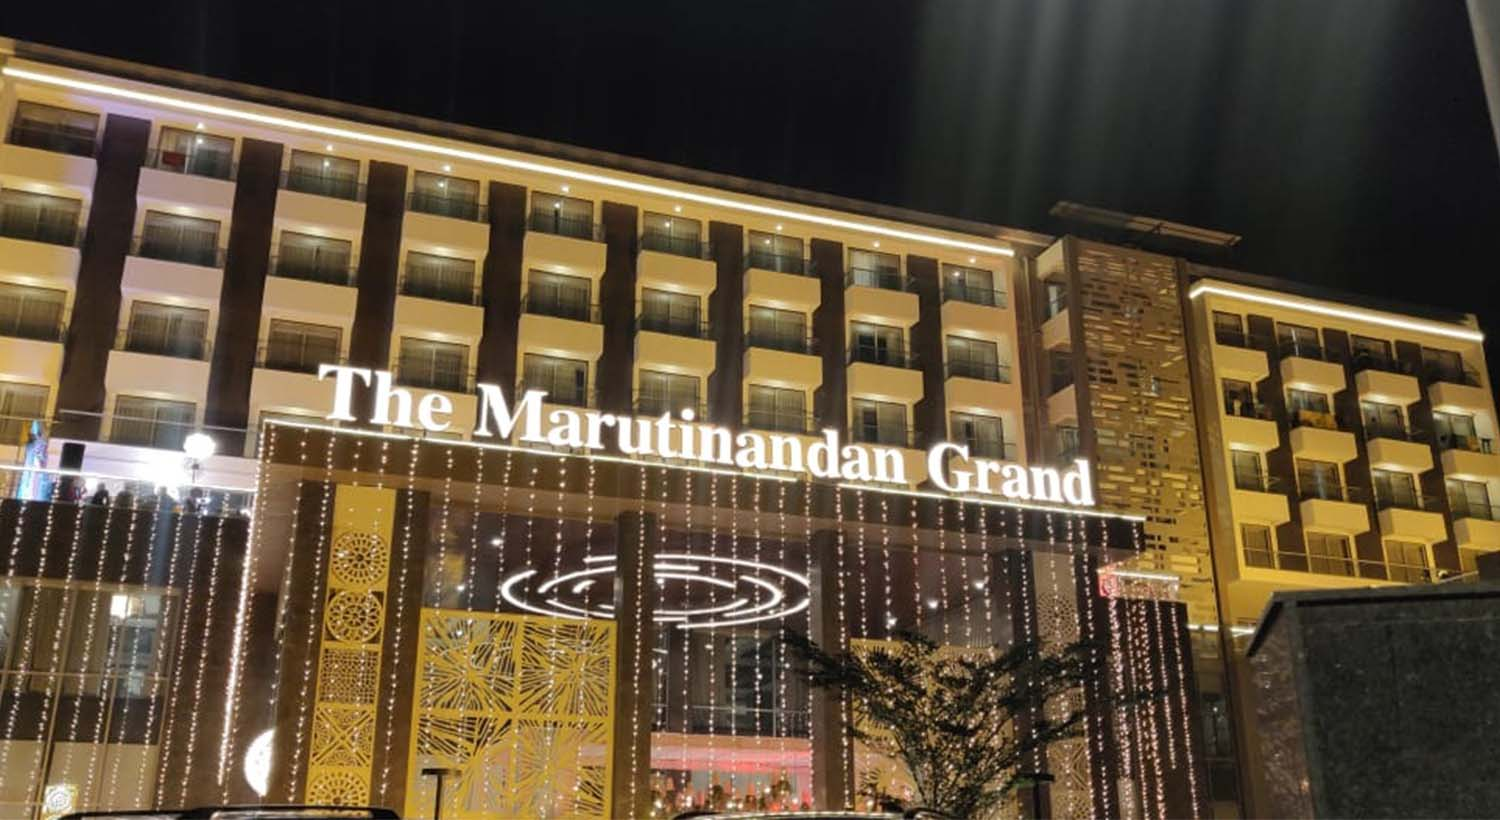 The Marutinandan Grand Hotel